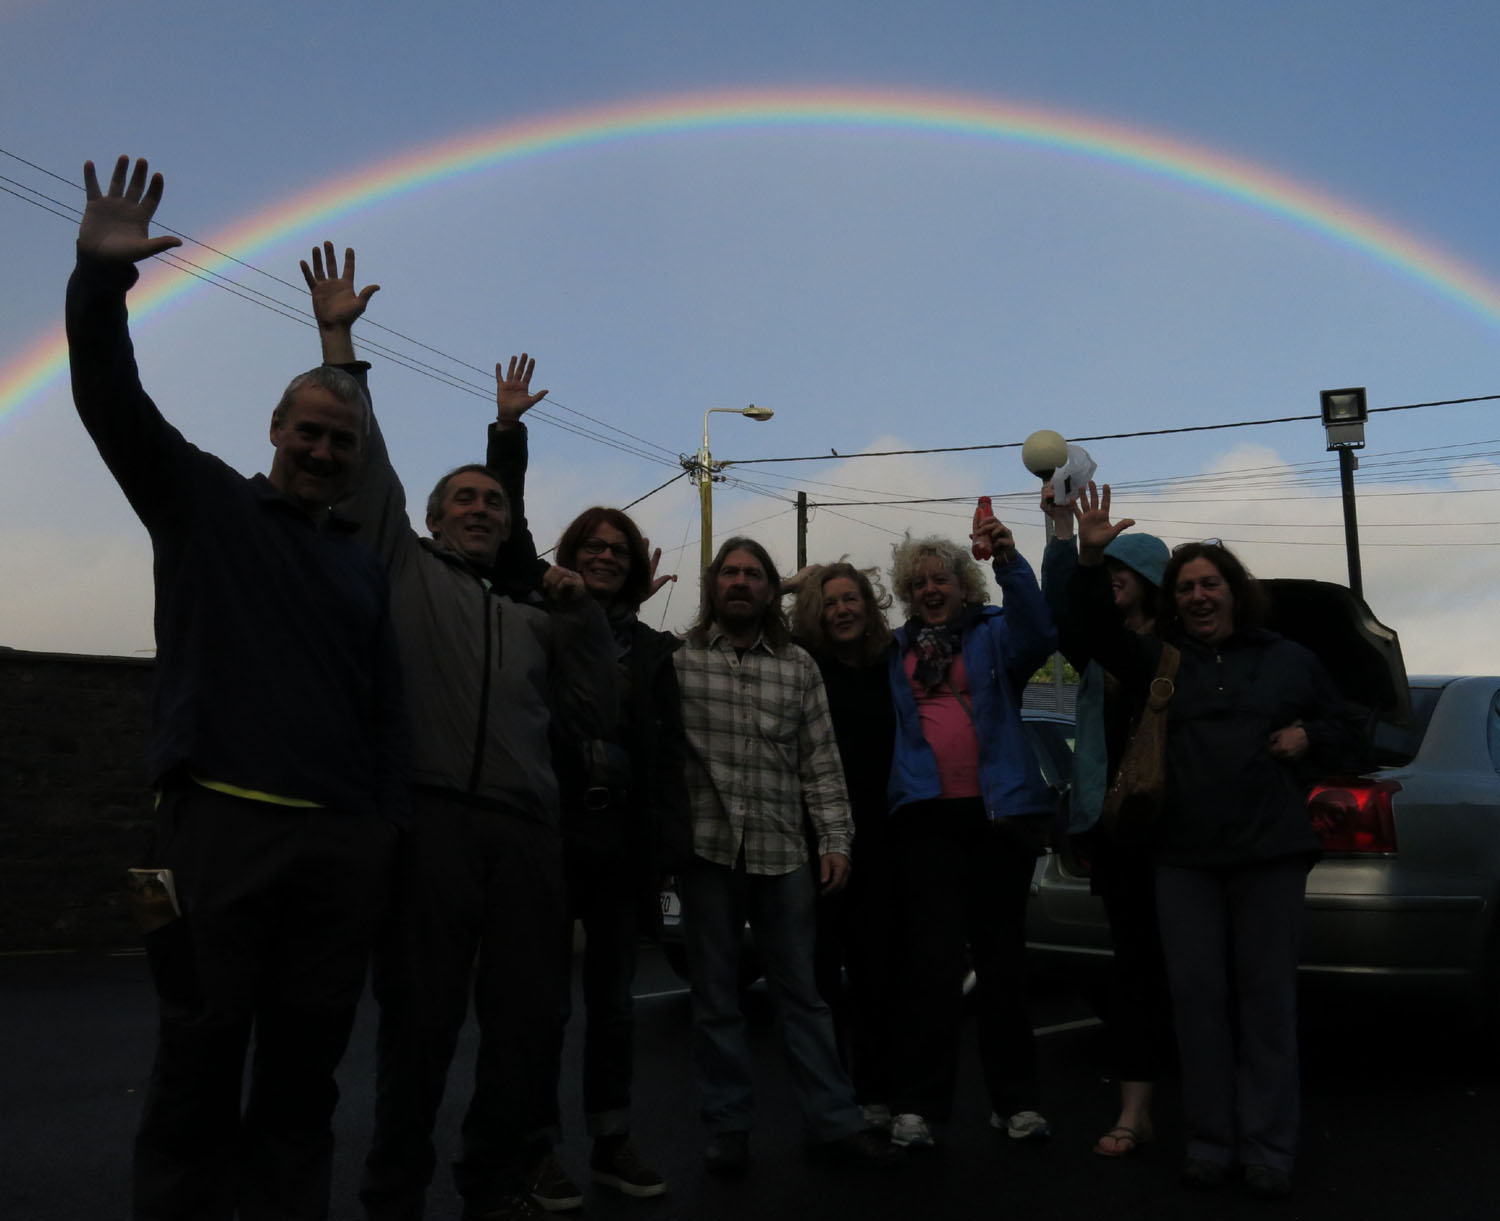 Ireland-People-Carlow-Team-Picture-Rainbow